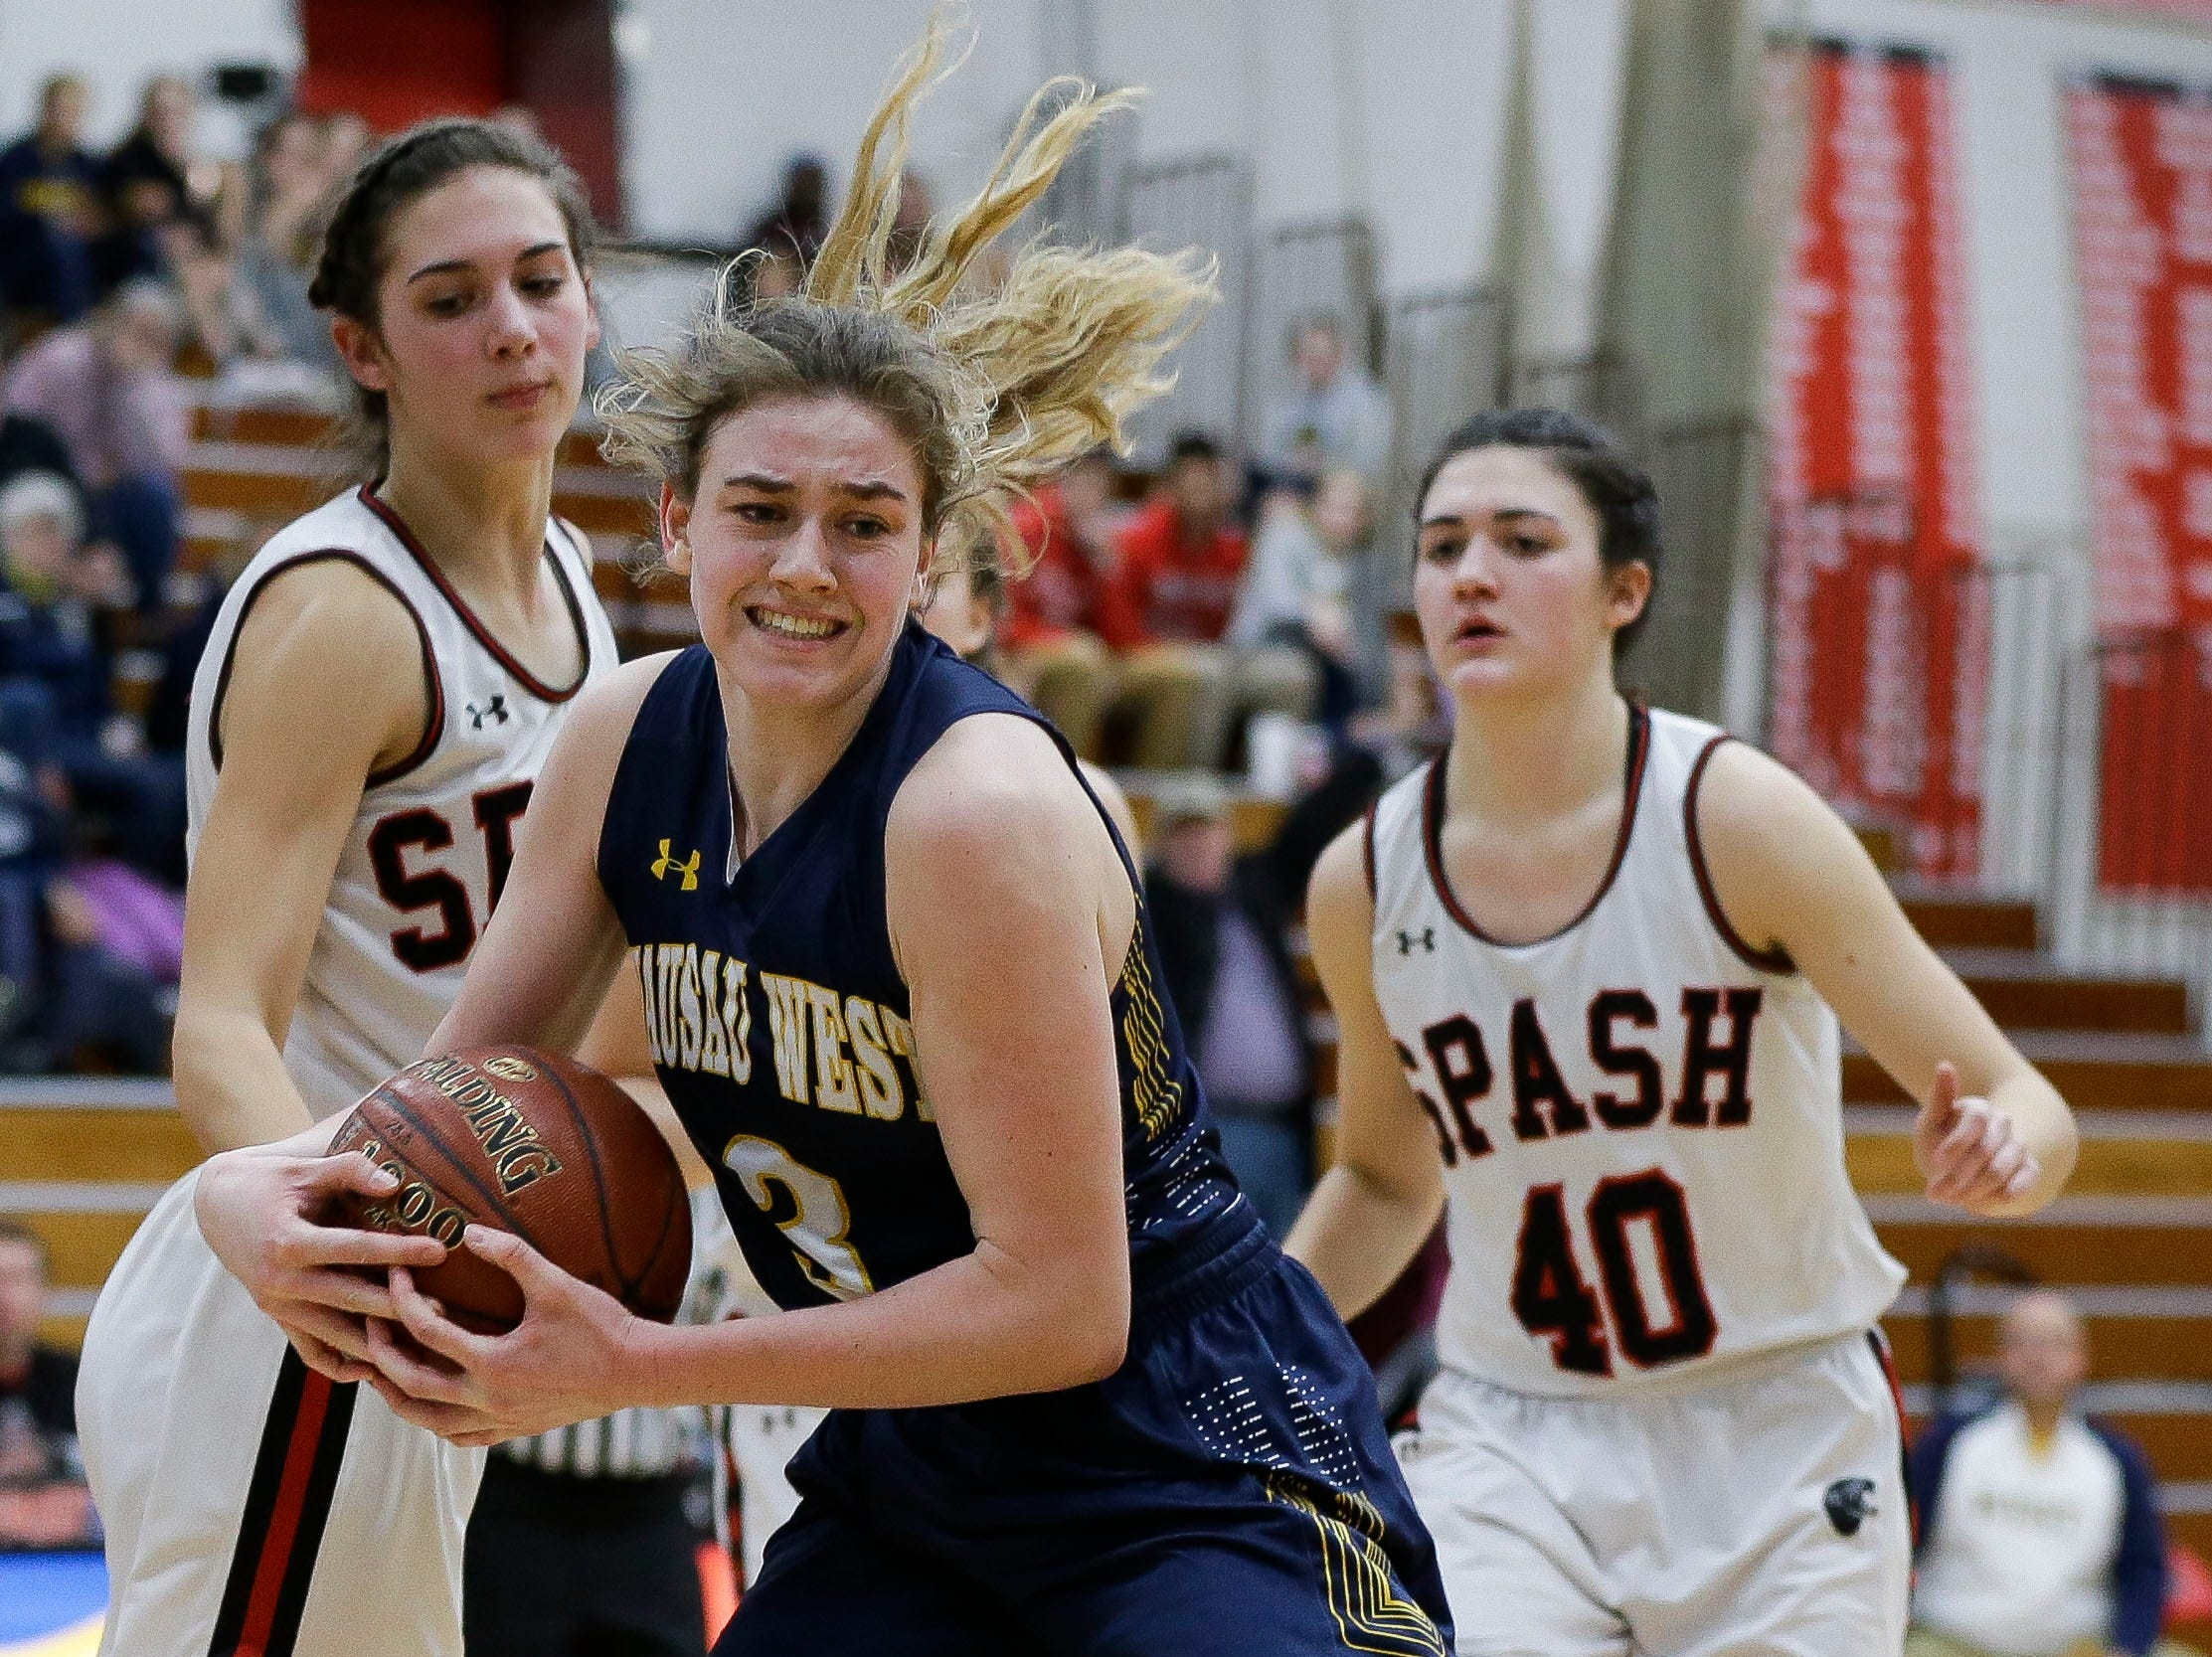 Wausau West's Kadie Deaton (3) grabs a rebound against SPASH on Thursday, February 14, 2019, at SPASH in Stevens Point, Wis.Tork Mason/USA TODAY NETWORK-Wisconsin